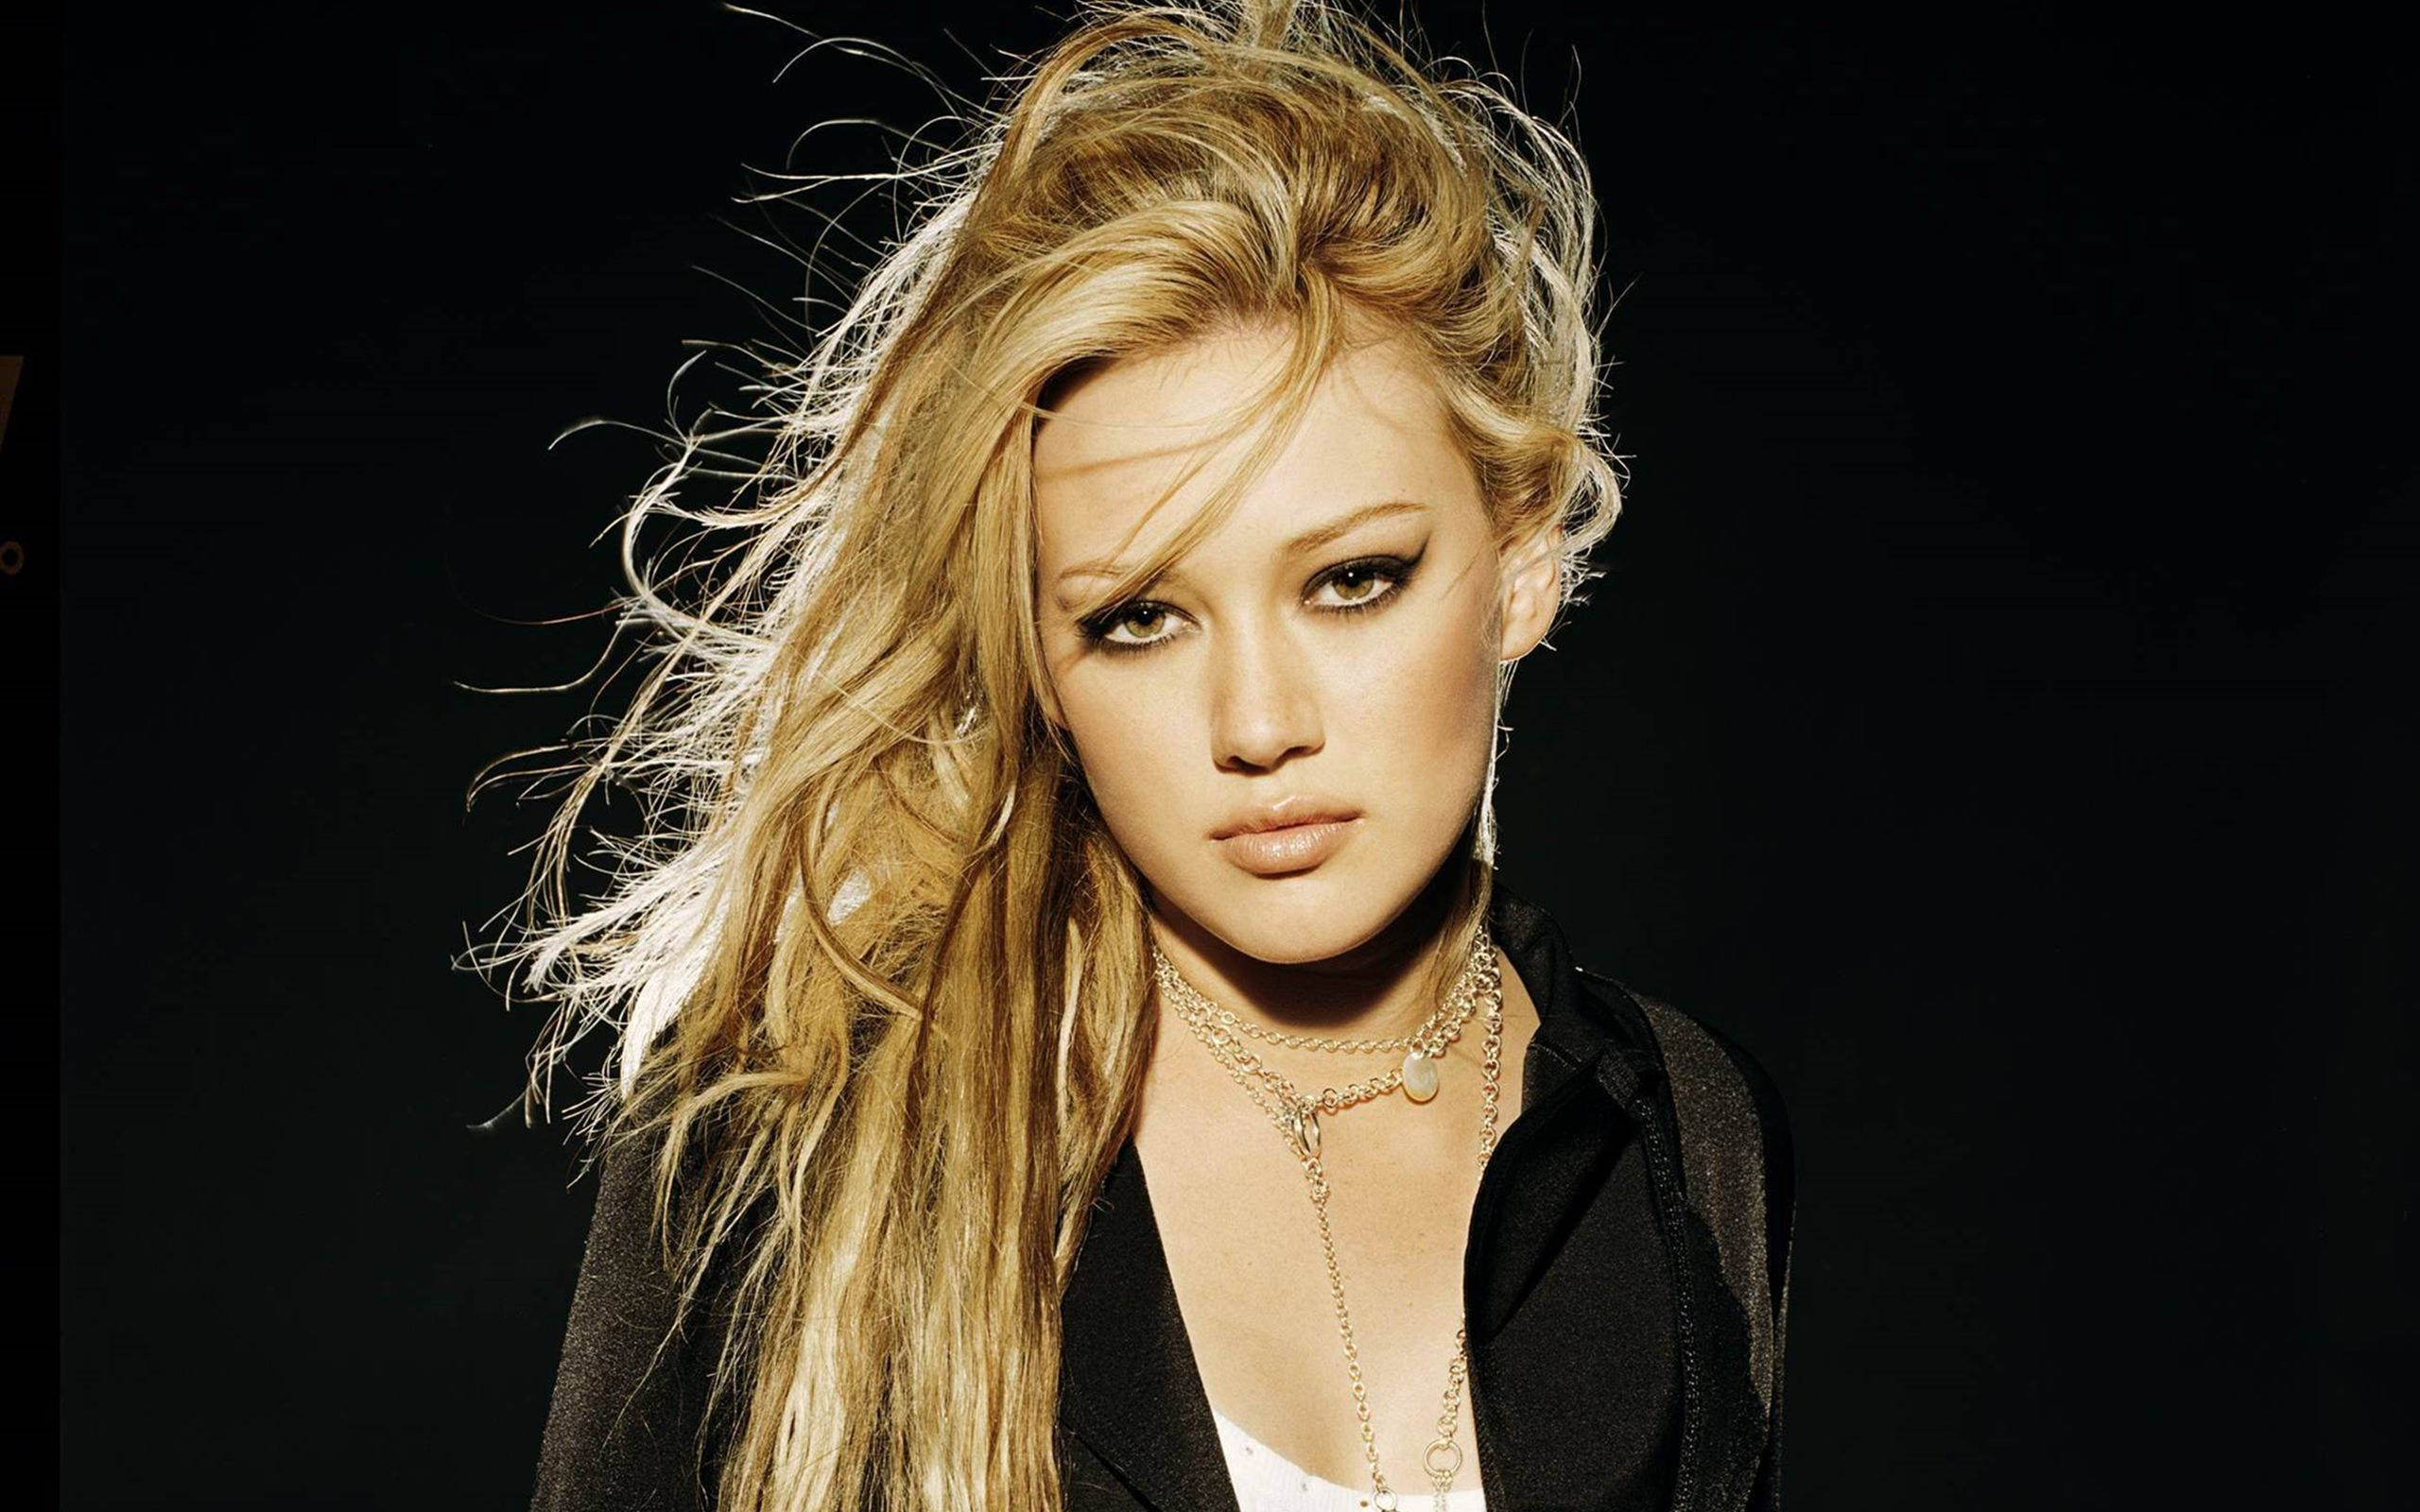 hilary duff amazing hair style with beauty face look pose desktop mobile background images hd free